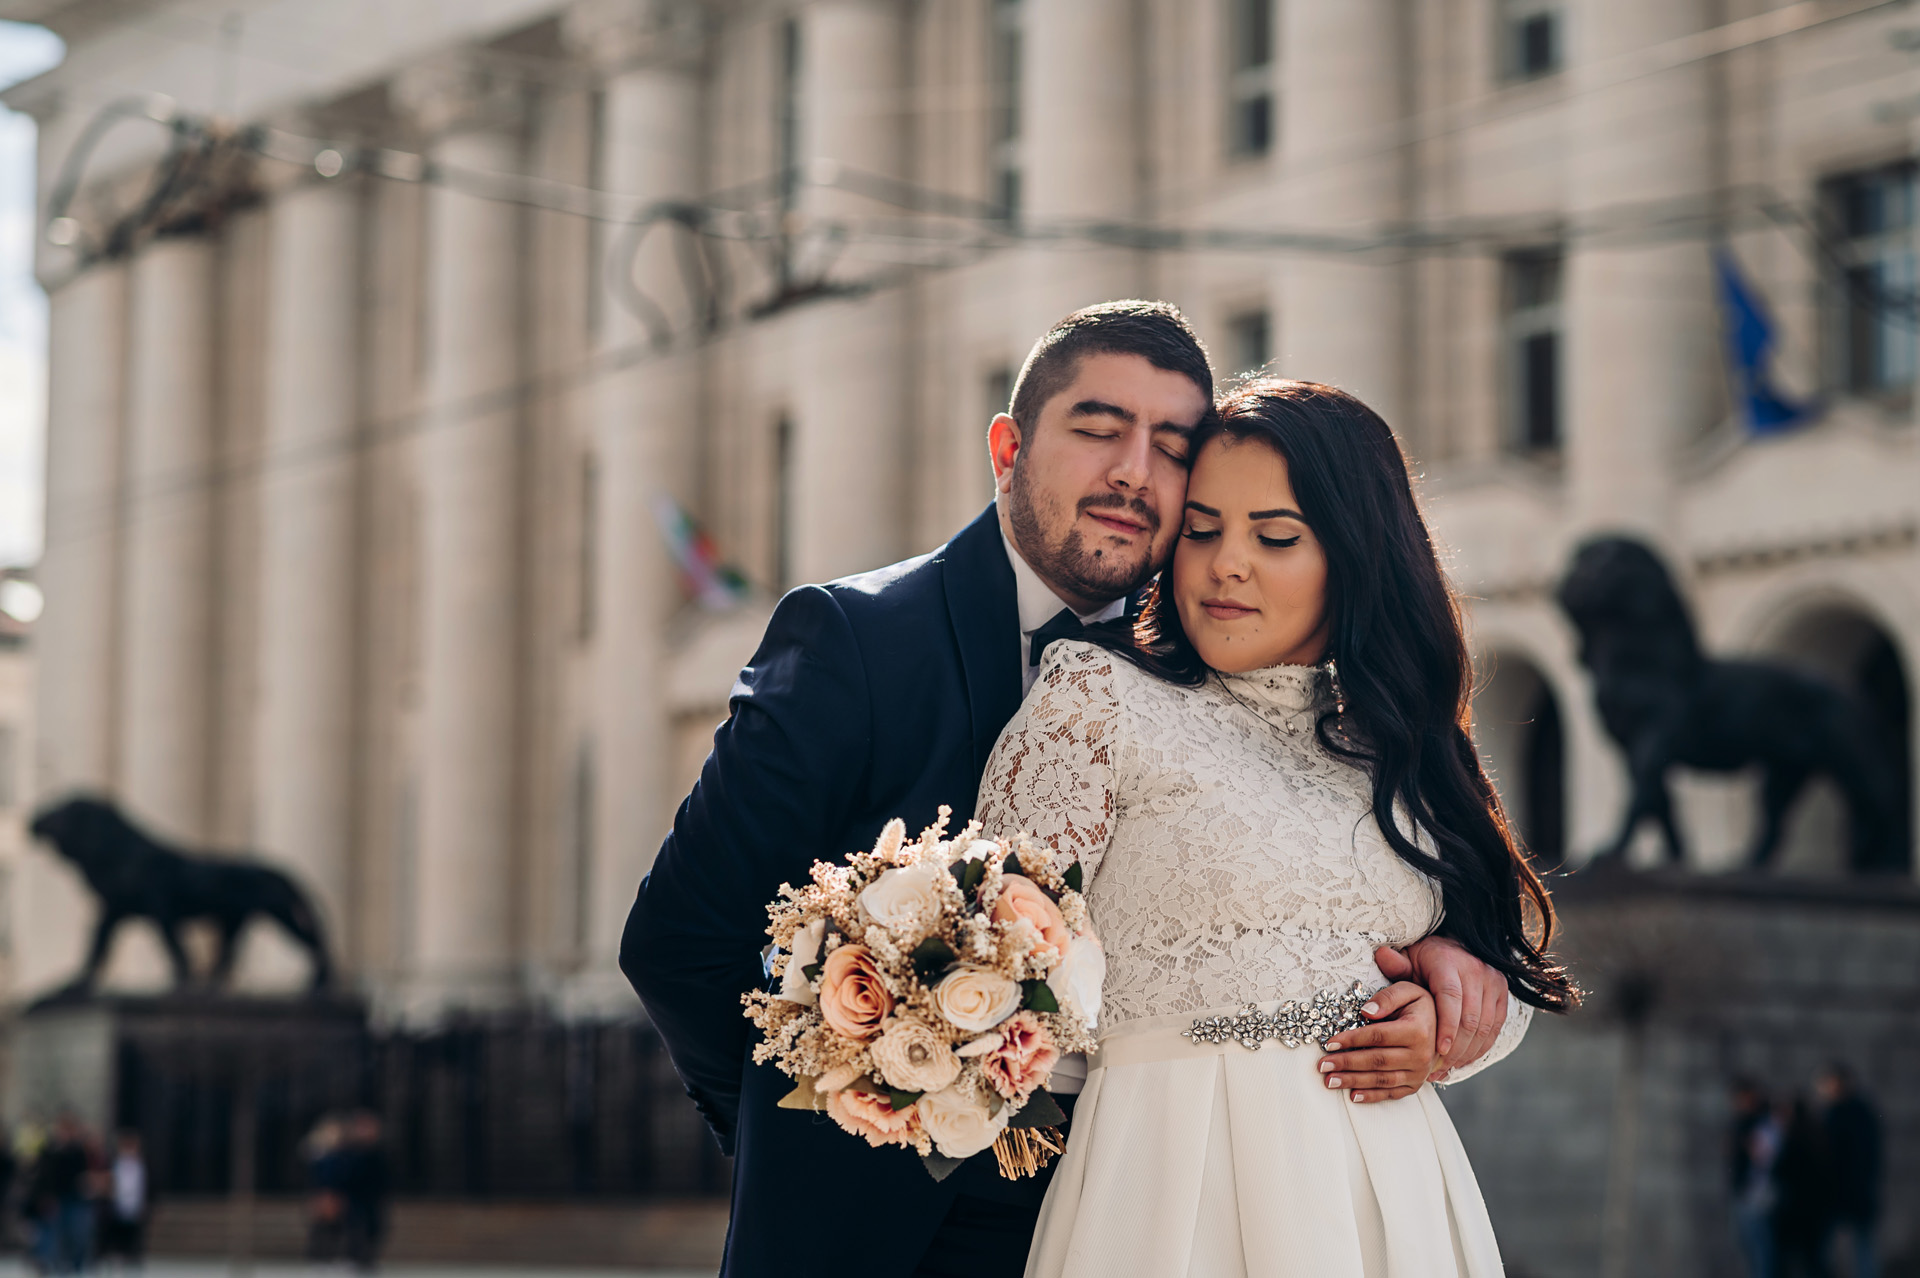 Sofia Wedding Photographer | The couple poses for a powerful and sensual portrait